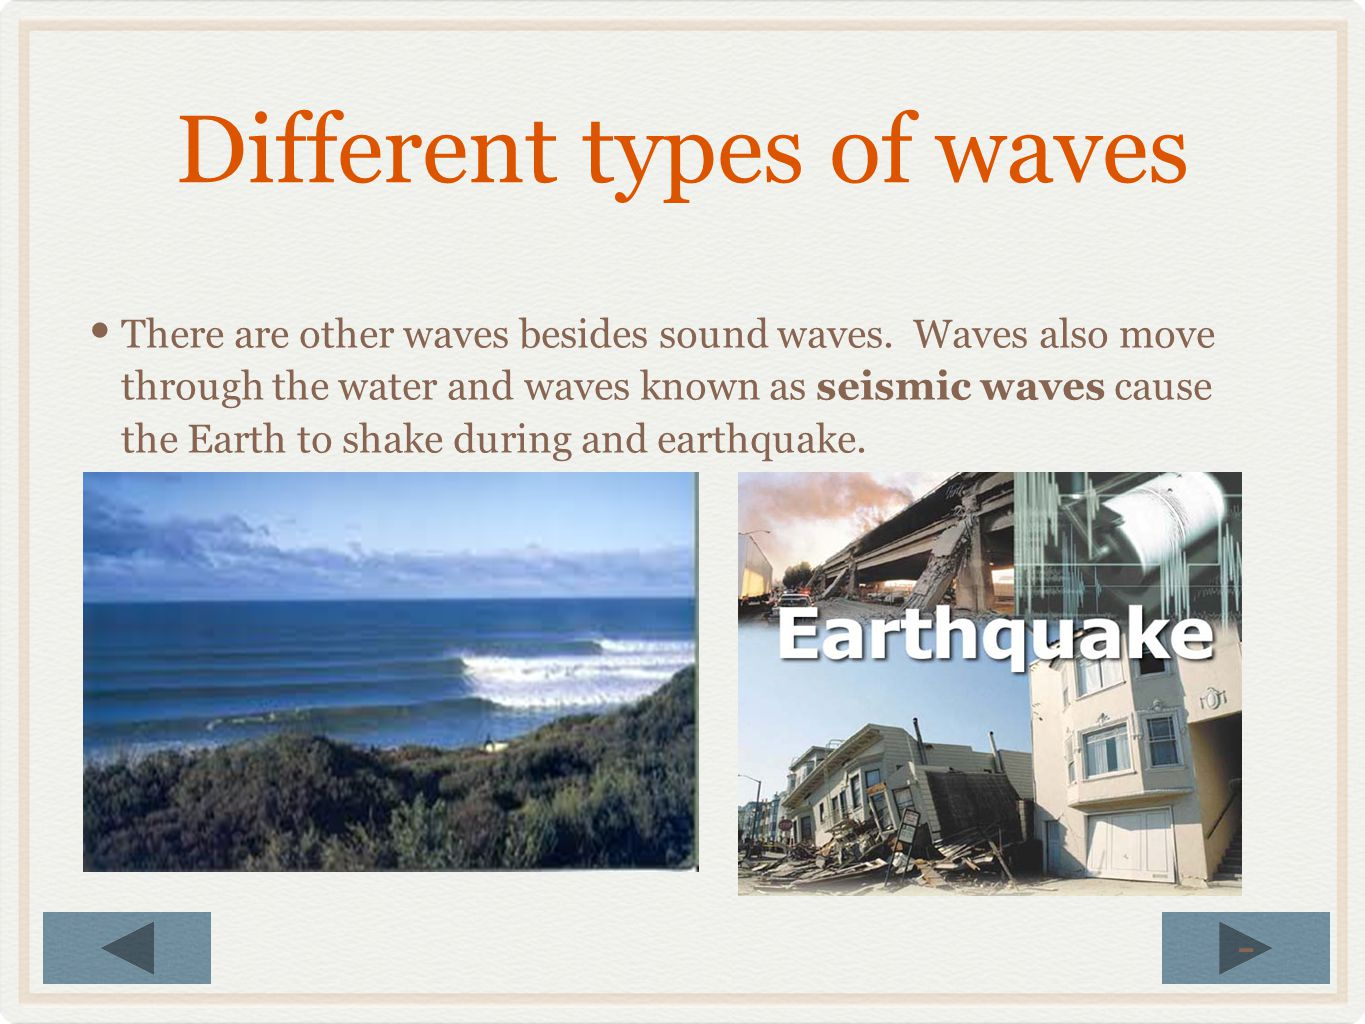 Different types of waves